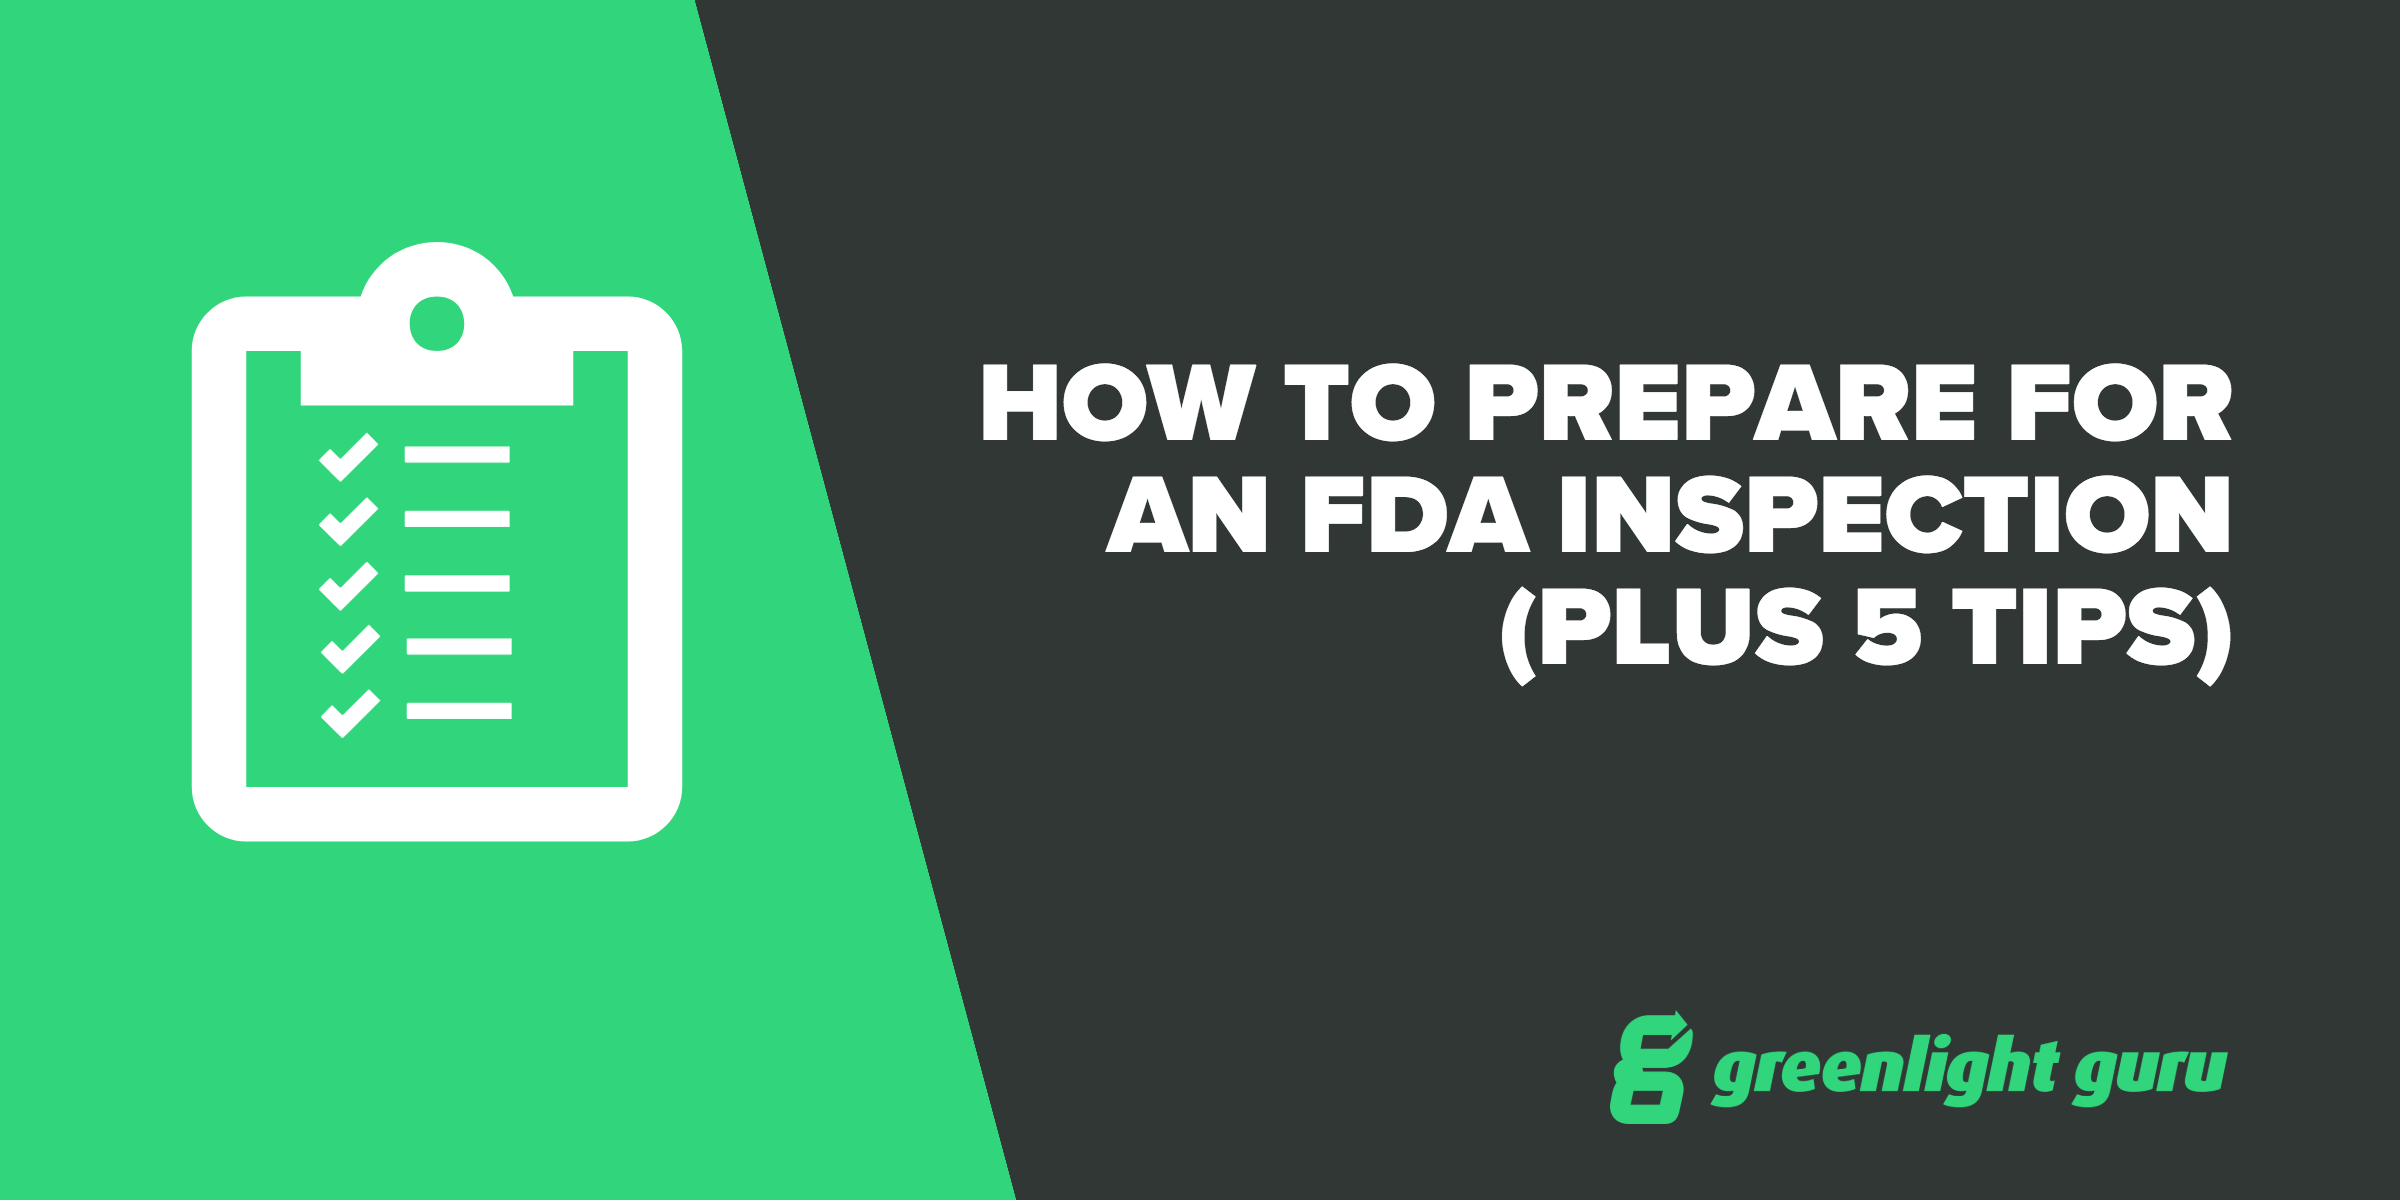 How To Prepare for an FDA Inspection (Plus 5 Tips) - Featured Image